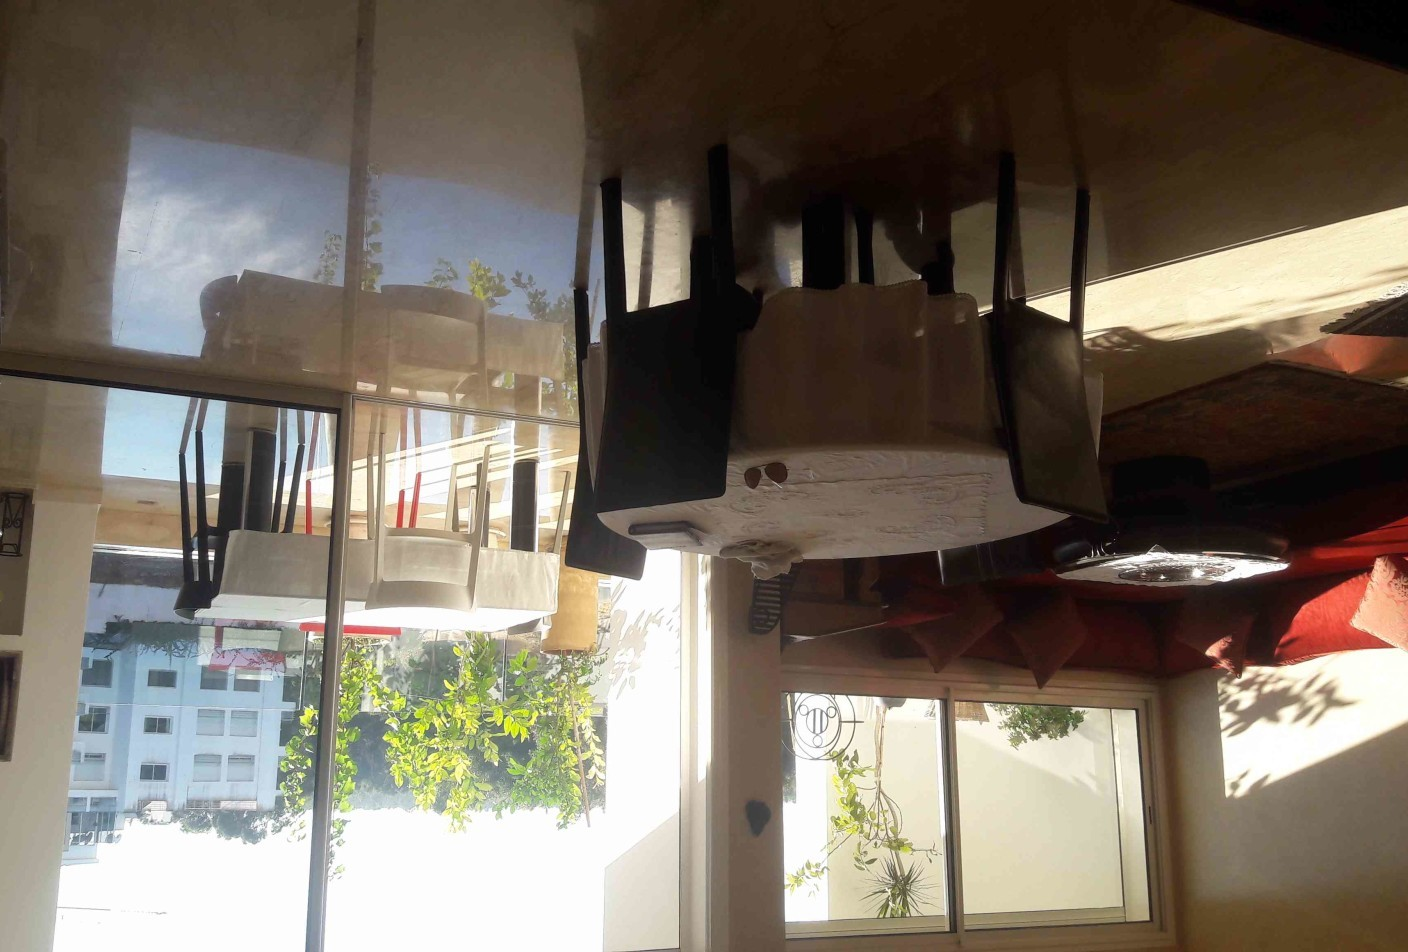 Location <strong>Appartement</strong> Rabat Hay Riad <strong>250 m2</strong> - 4 chambre(s)